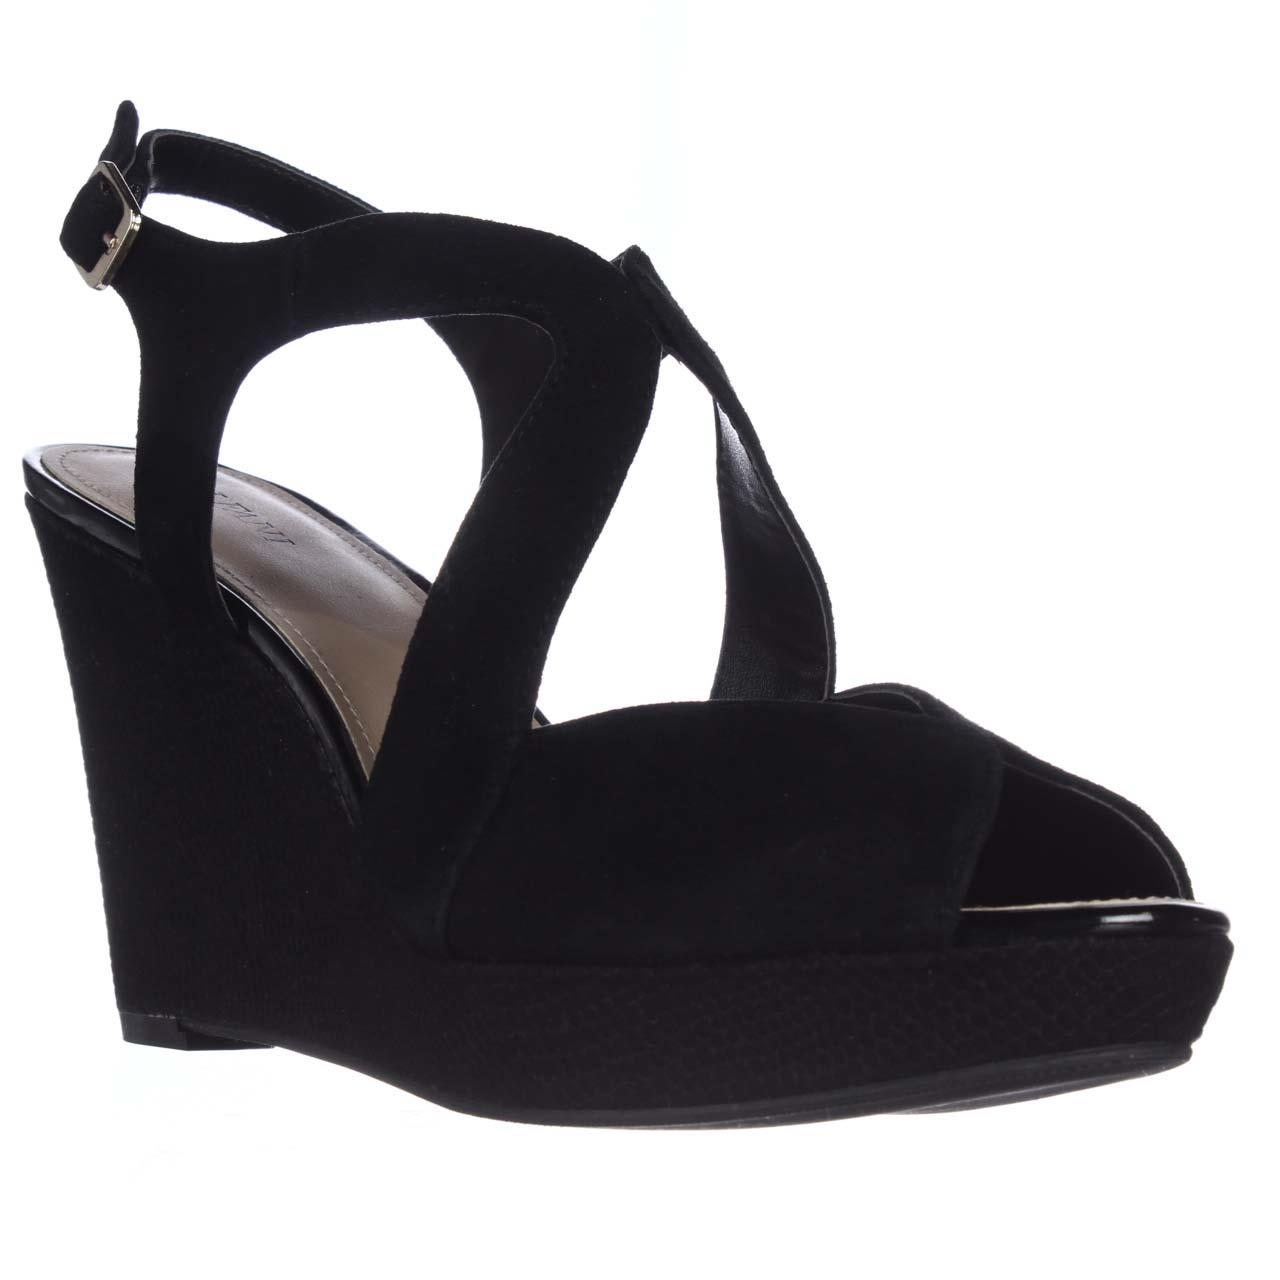 Womens Pellae Platform Wedge Sandals - Black